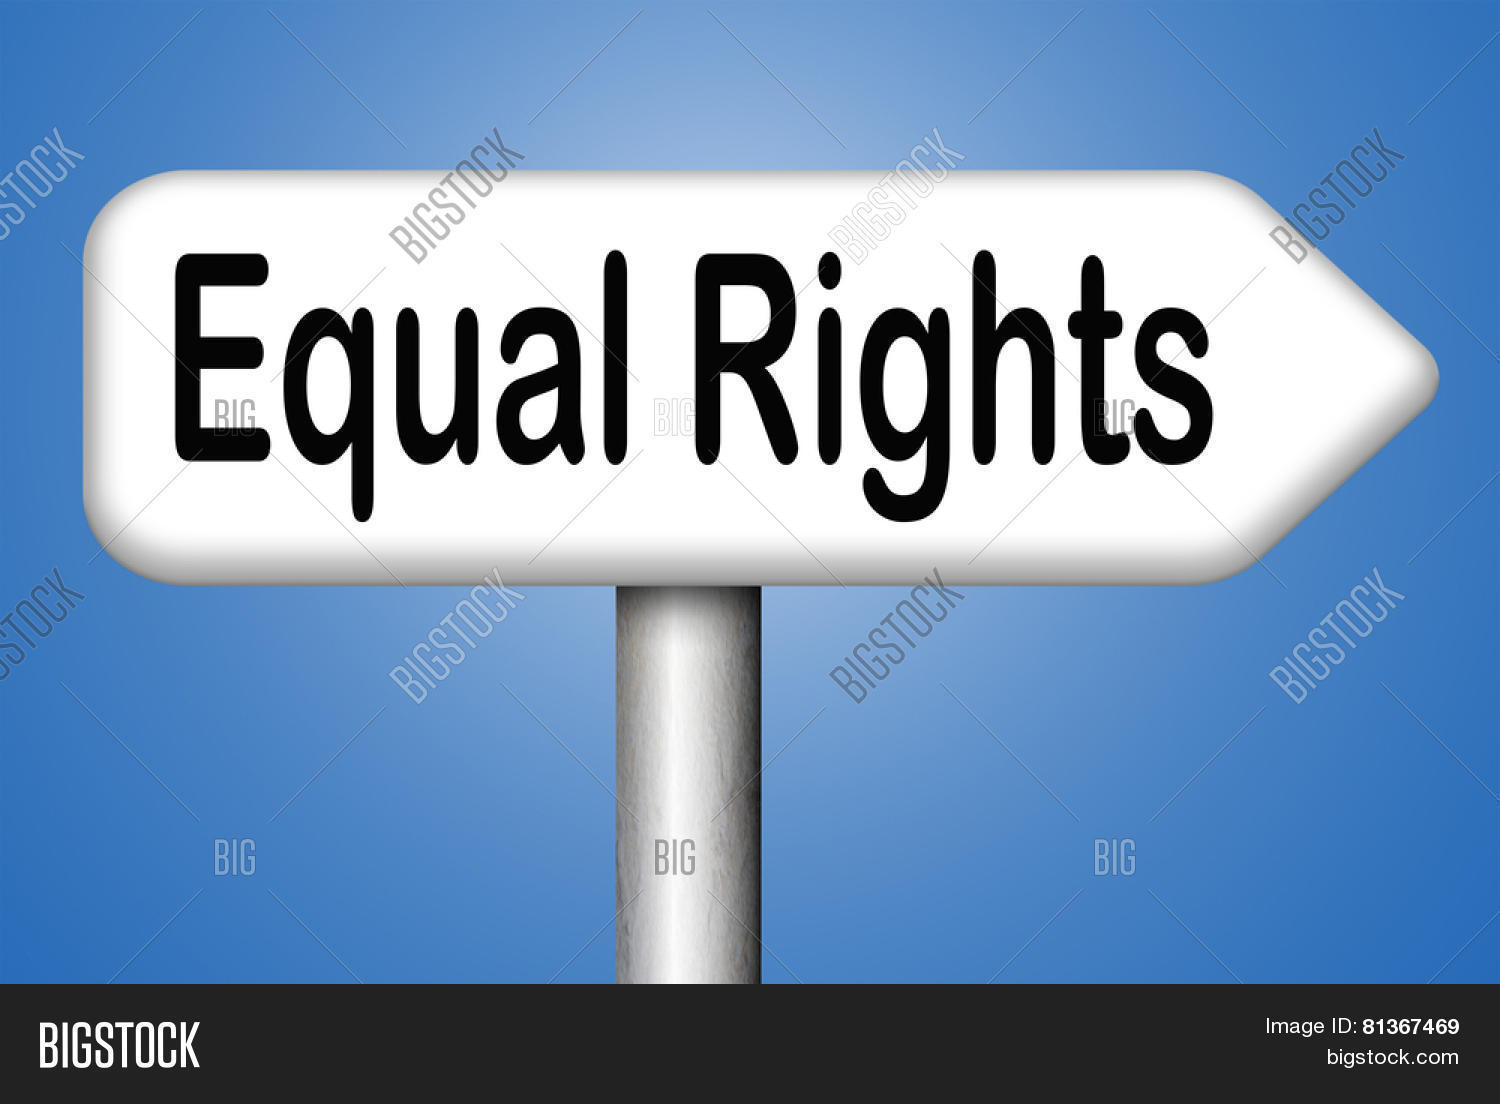 rights of equality The fundamental rights are guaranteed to protect the basic human rights of all citizens of india and are put into effect by the courts, subject to some limitations one of such fundamental rights is the right to equality right to equality refers to the equality in the eyes of law, discarding any.